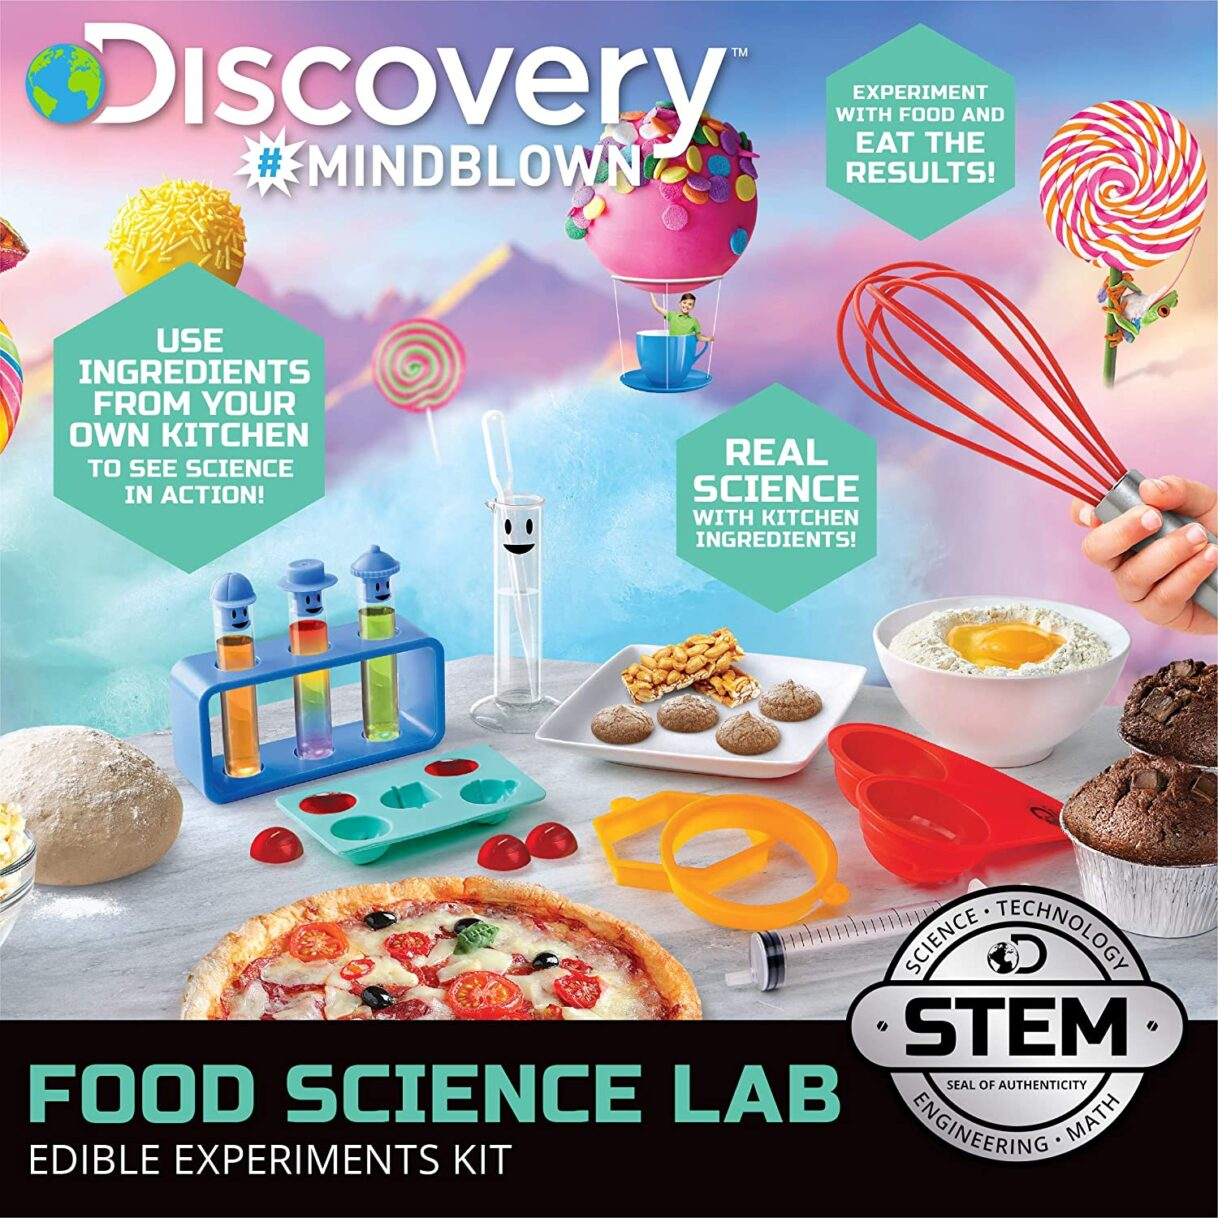 Kitchen Science: Discovery #MINDBLOWN Food Science Kit, Lab Experiments with Edible Results, Real Kitchen Ingredients with 22 Tools Included